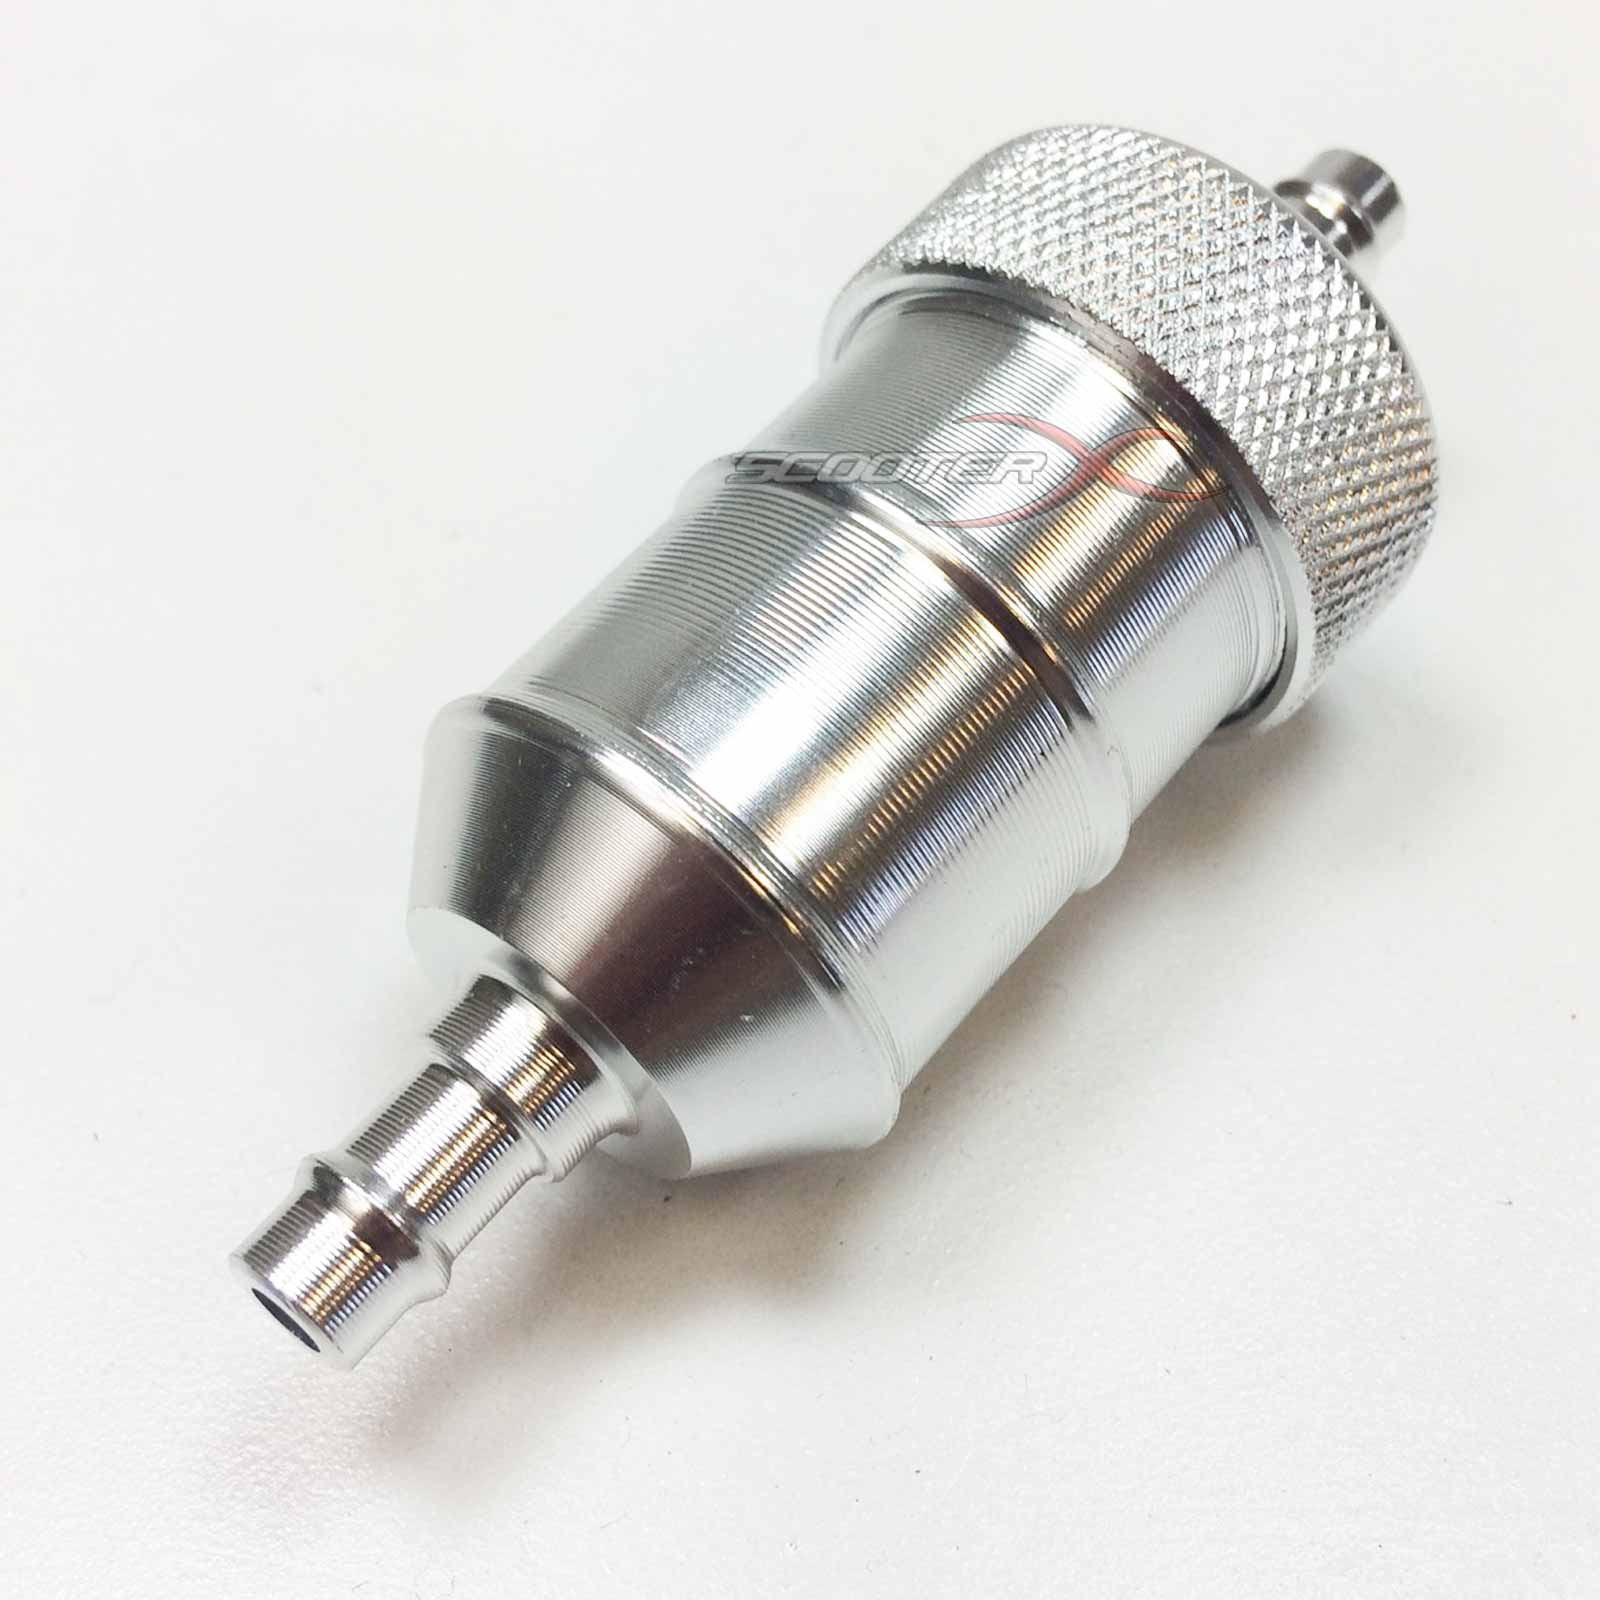 hight resolution of  silver anodized fuel filter 1 4 flange